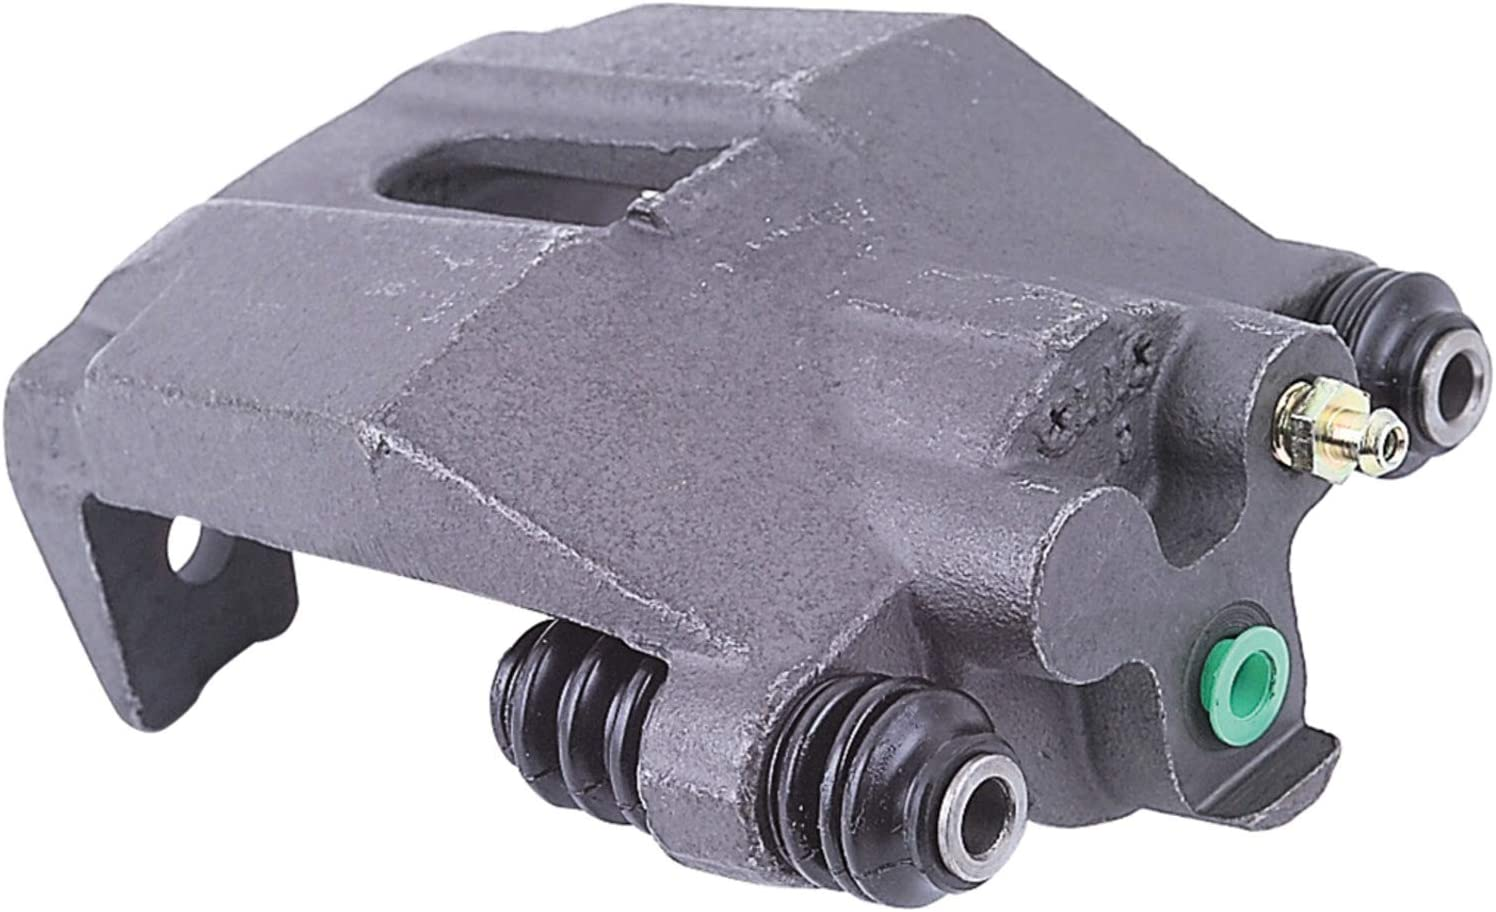 Brake Caliper Cardone 18-4859 Remanufactured Domestic Friction Ready Unloaded